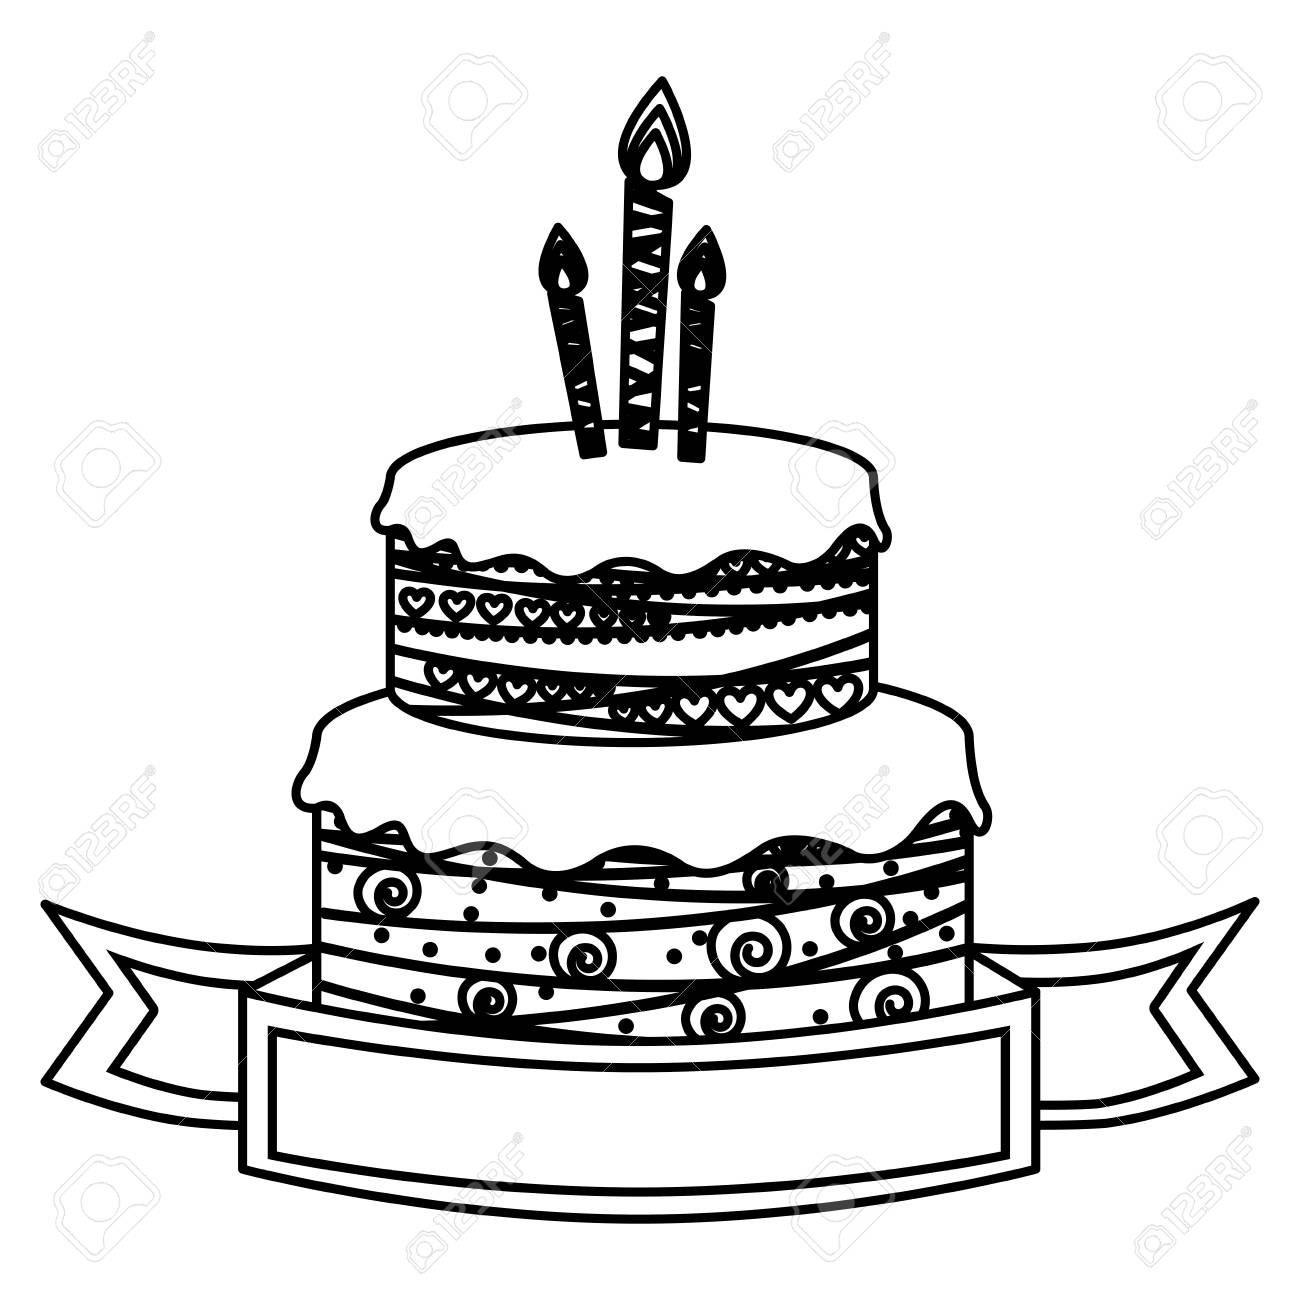 Sketch Silhouette Birthday Cake Two Floors With Candles And Ribbon Vector Illustration Stock